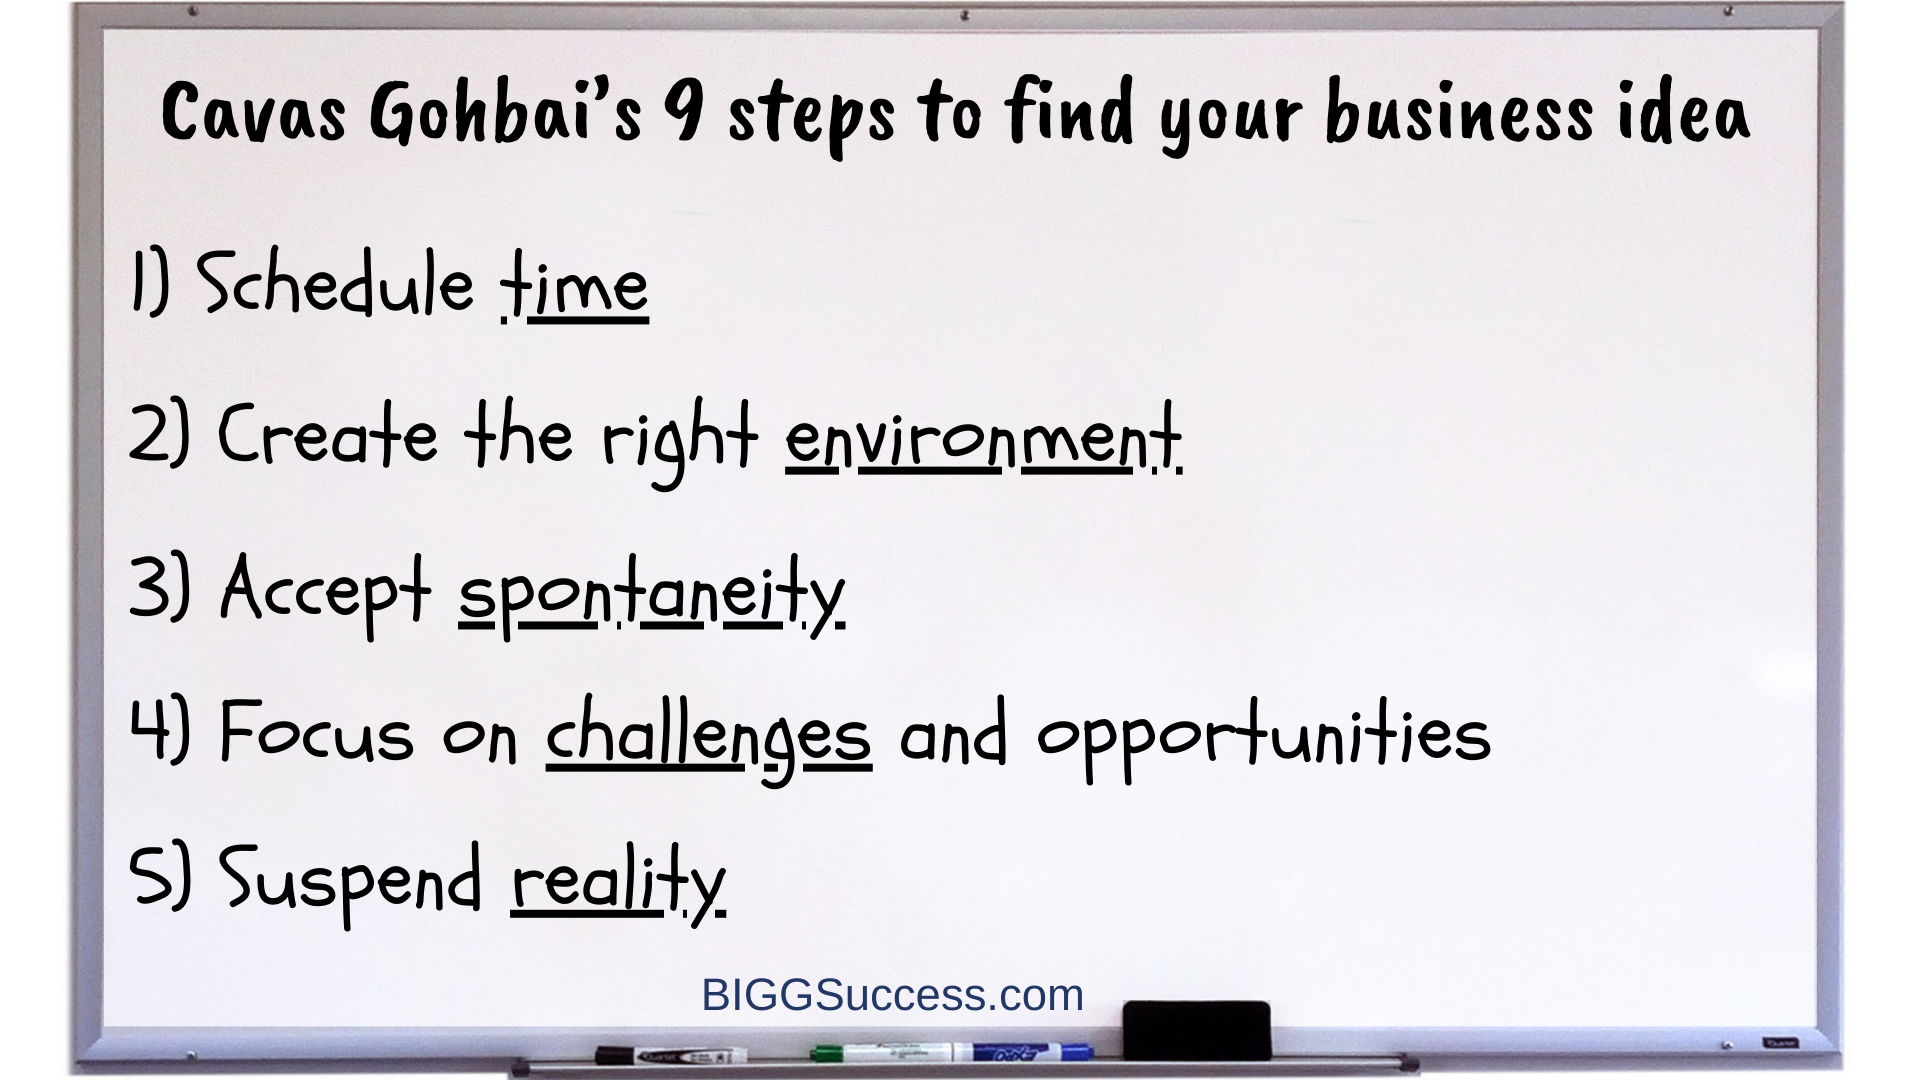 Whiteboard 1066-9 Steps to Find Your Business Idea 1